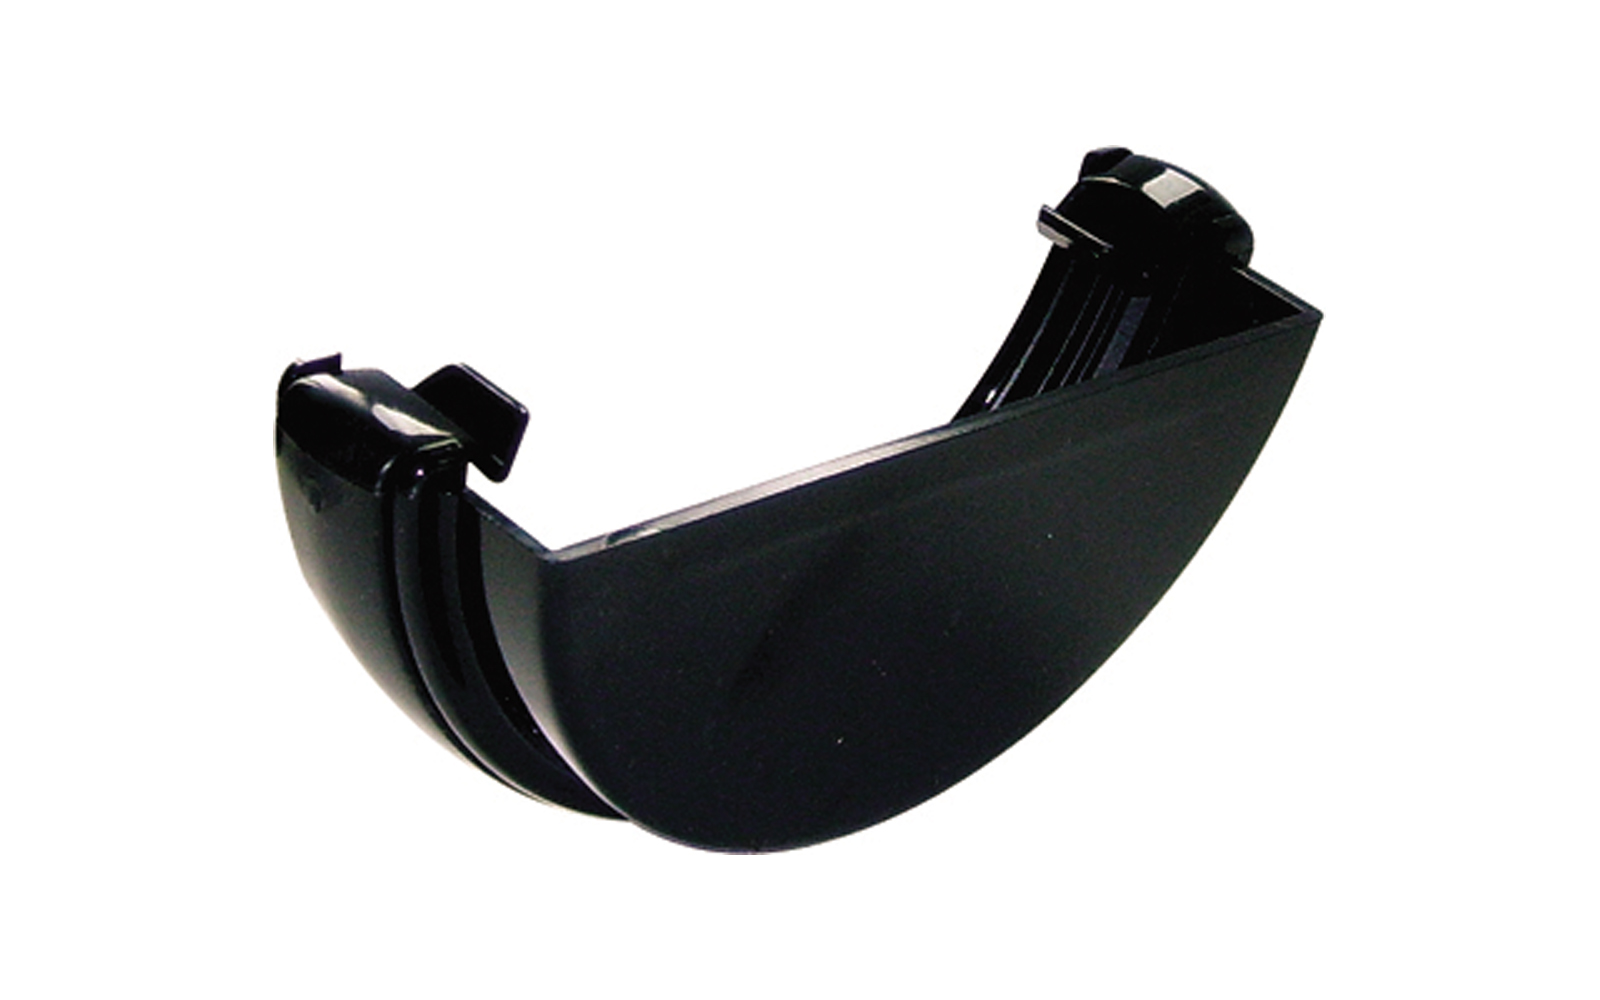 FLOPLAST HALF ROUND GUTTER - RE1 EXTERNAL STOPEND - BLACK